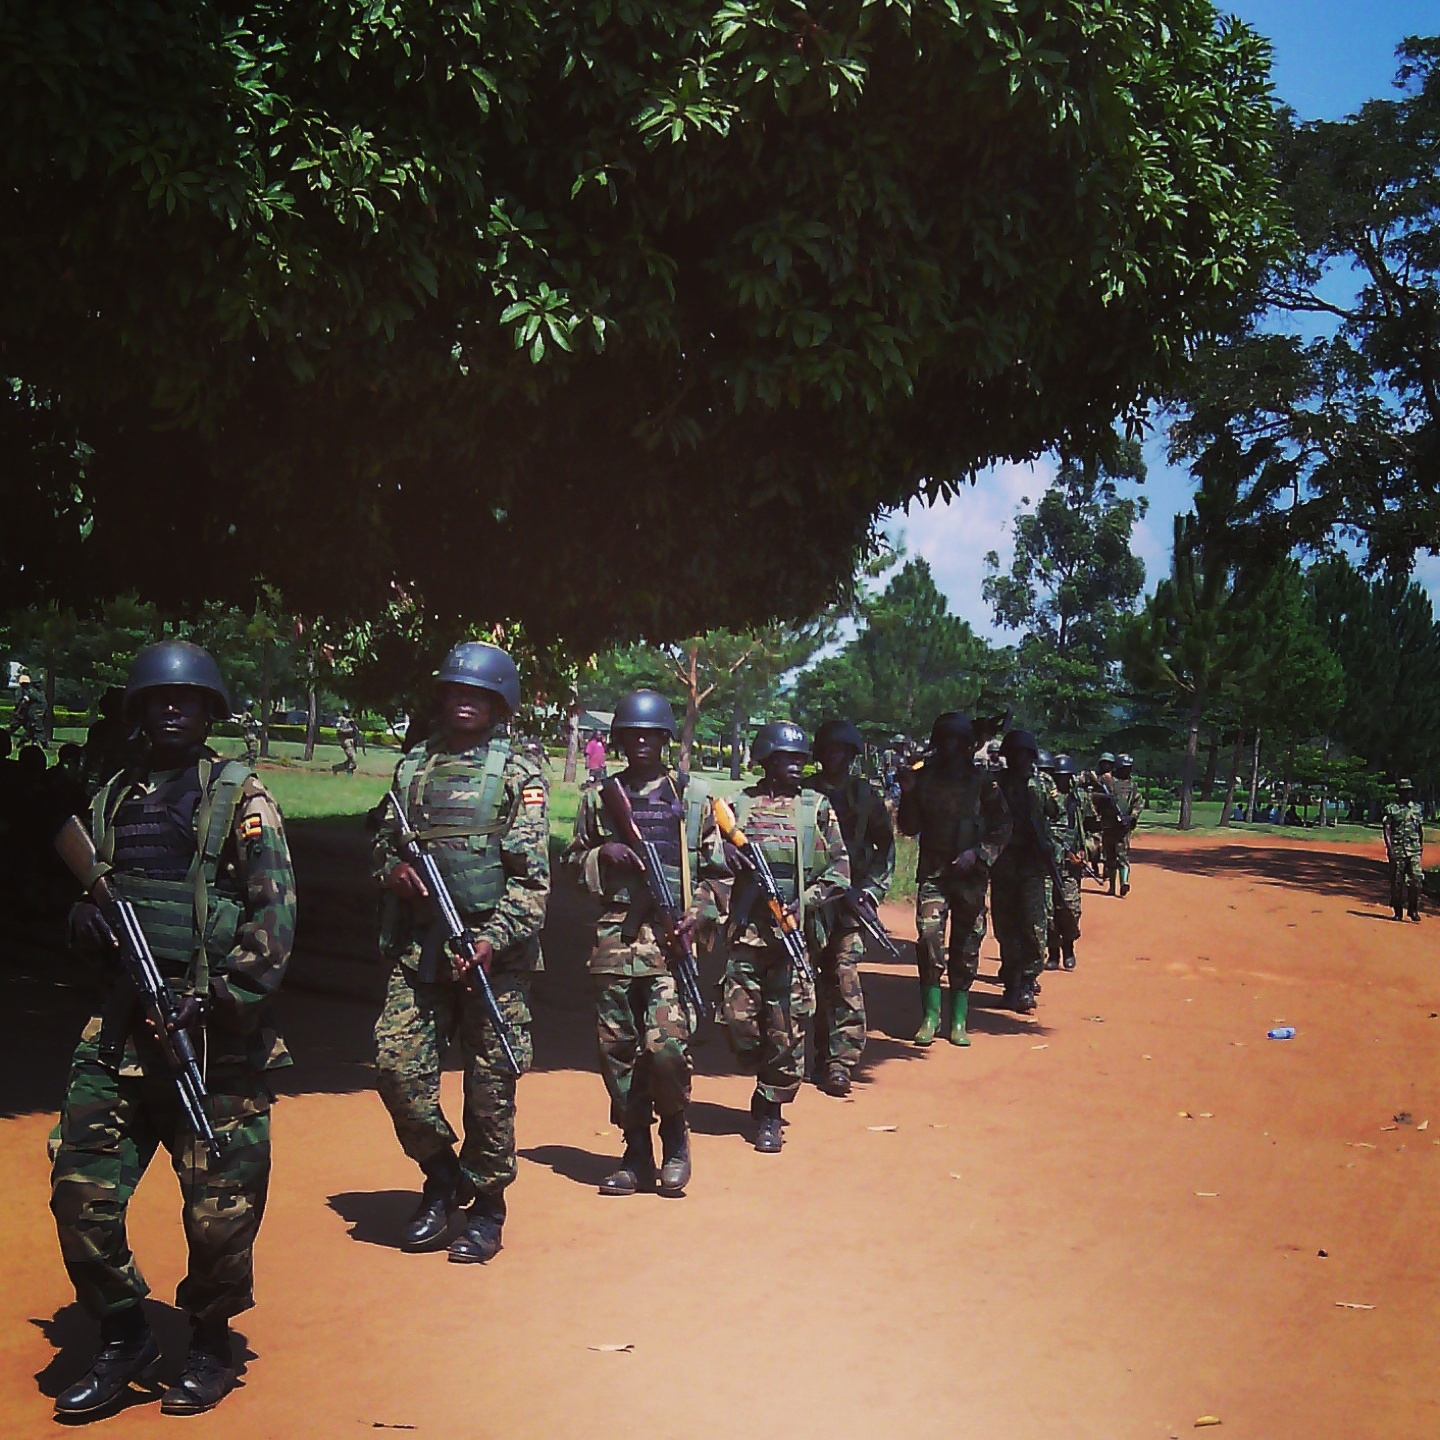 Soldiers after paintballing  with live bullets though